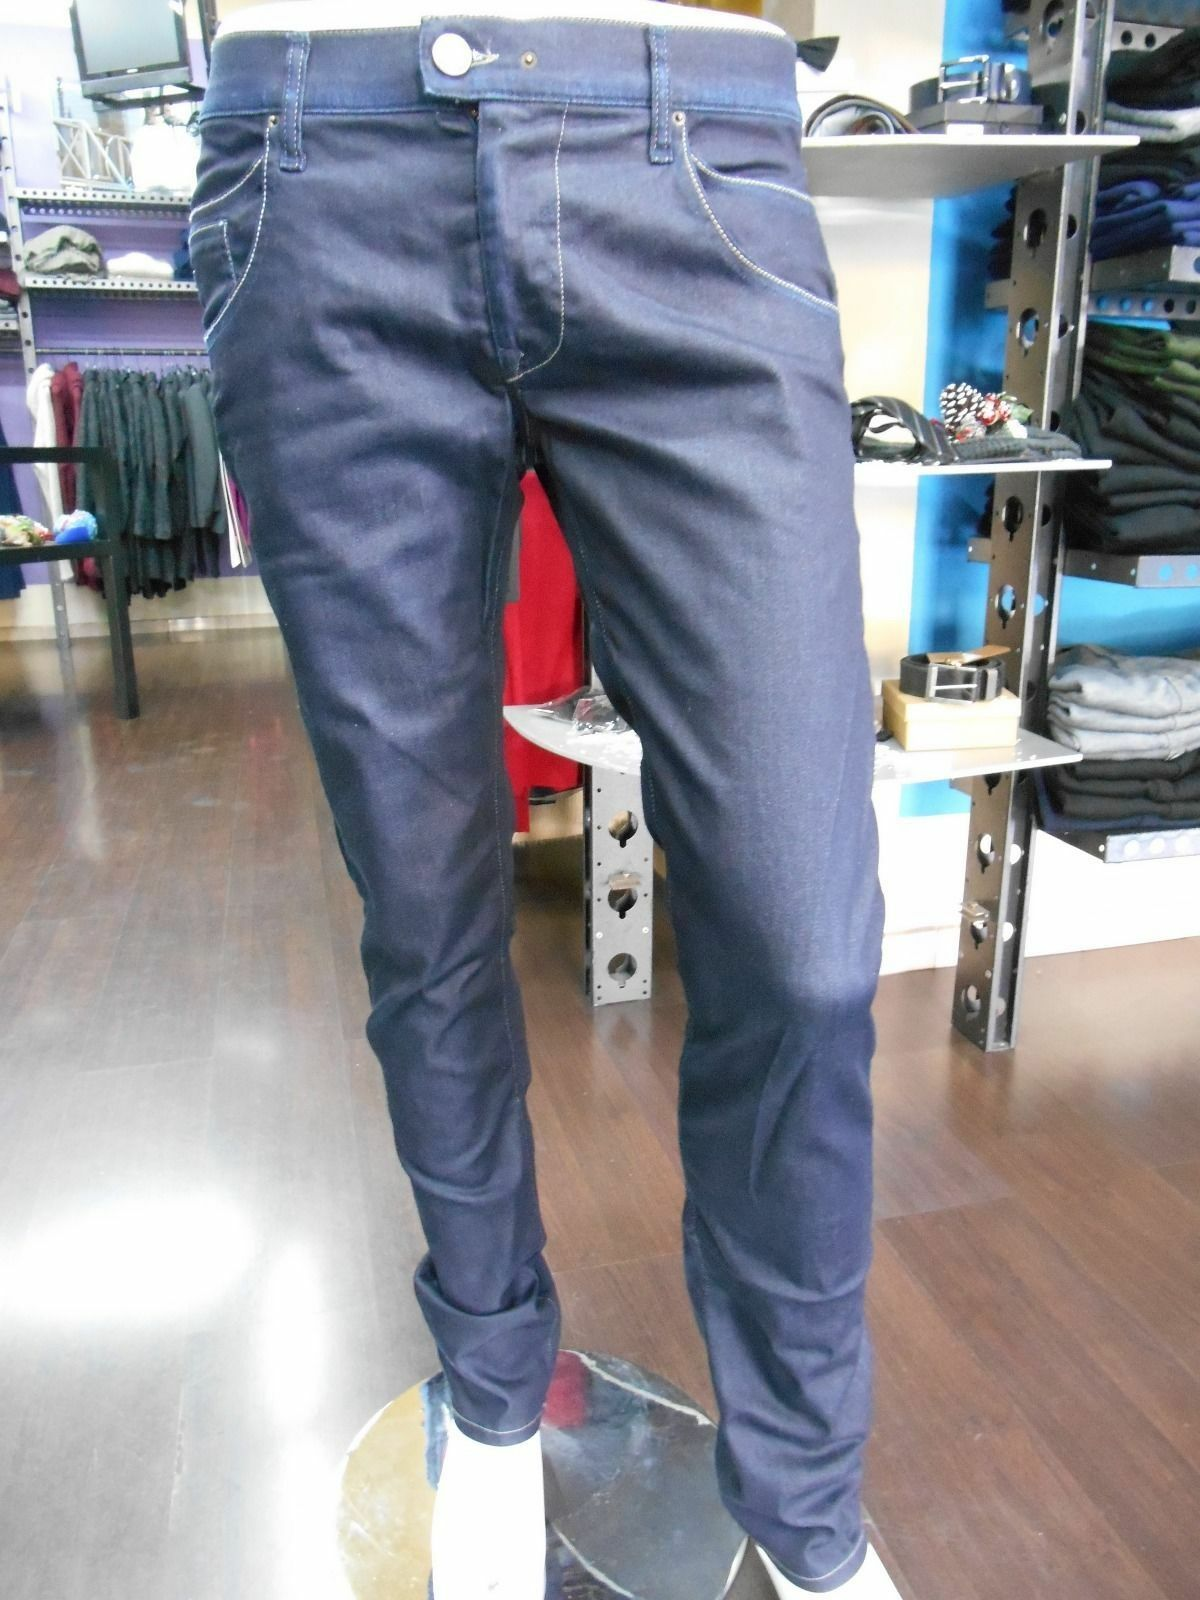 TAKE TWO JEANS SLIM EROL TRATT. 232 P03933 D2047 PRICE LIST PRICE